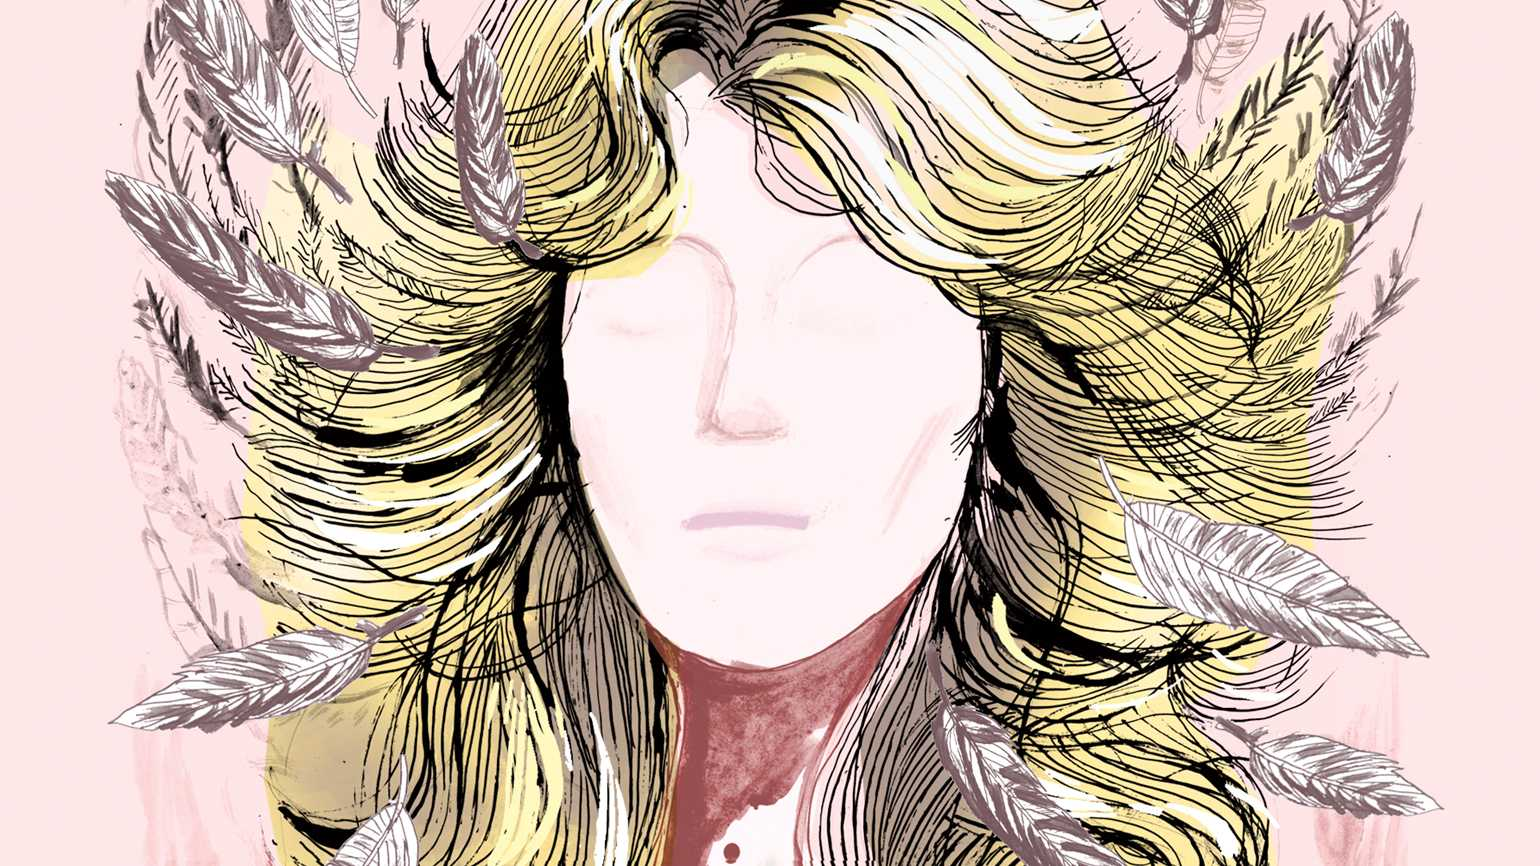 An artist's rendering of Farrah Faucett hair with angel wings scattered in.